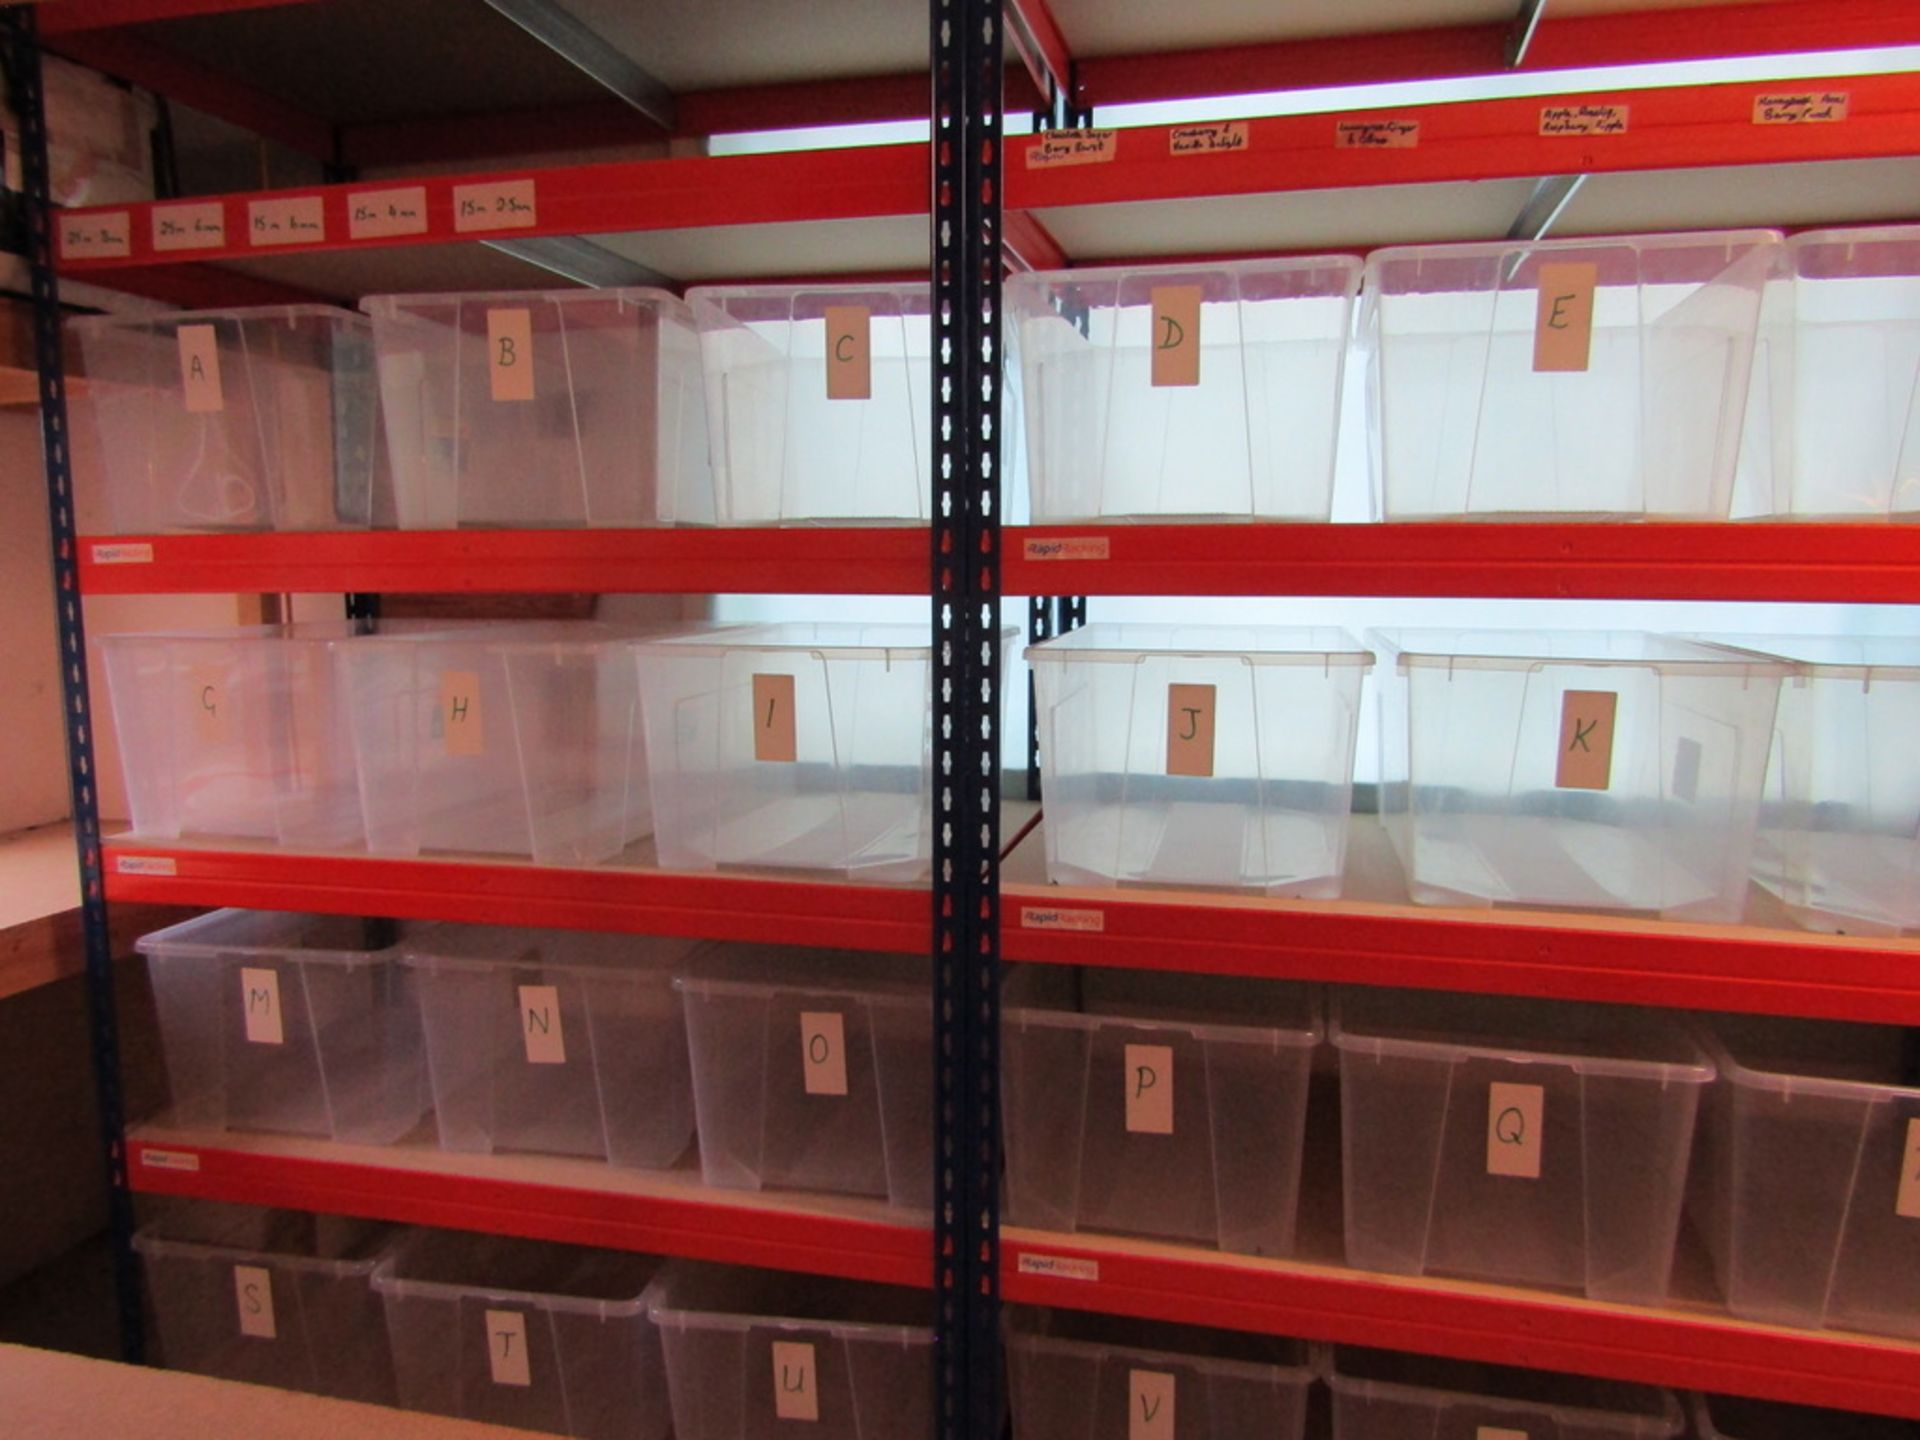 2 Bays of Racking with Storage Boxes. USED - Image 2 of 7